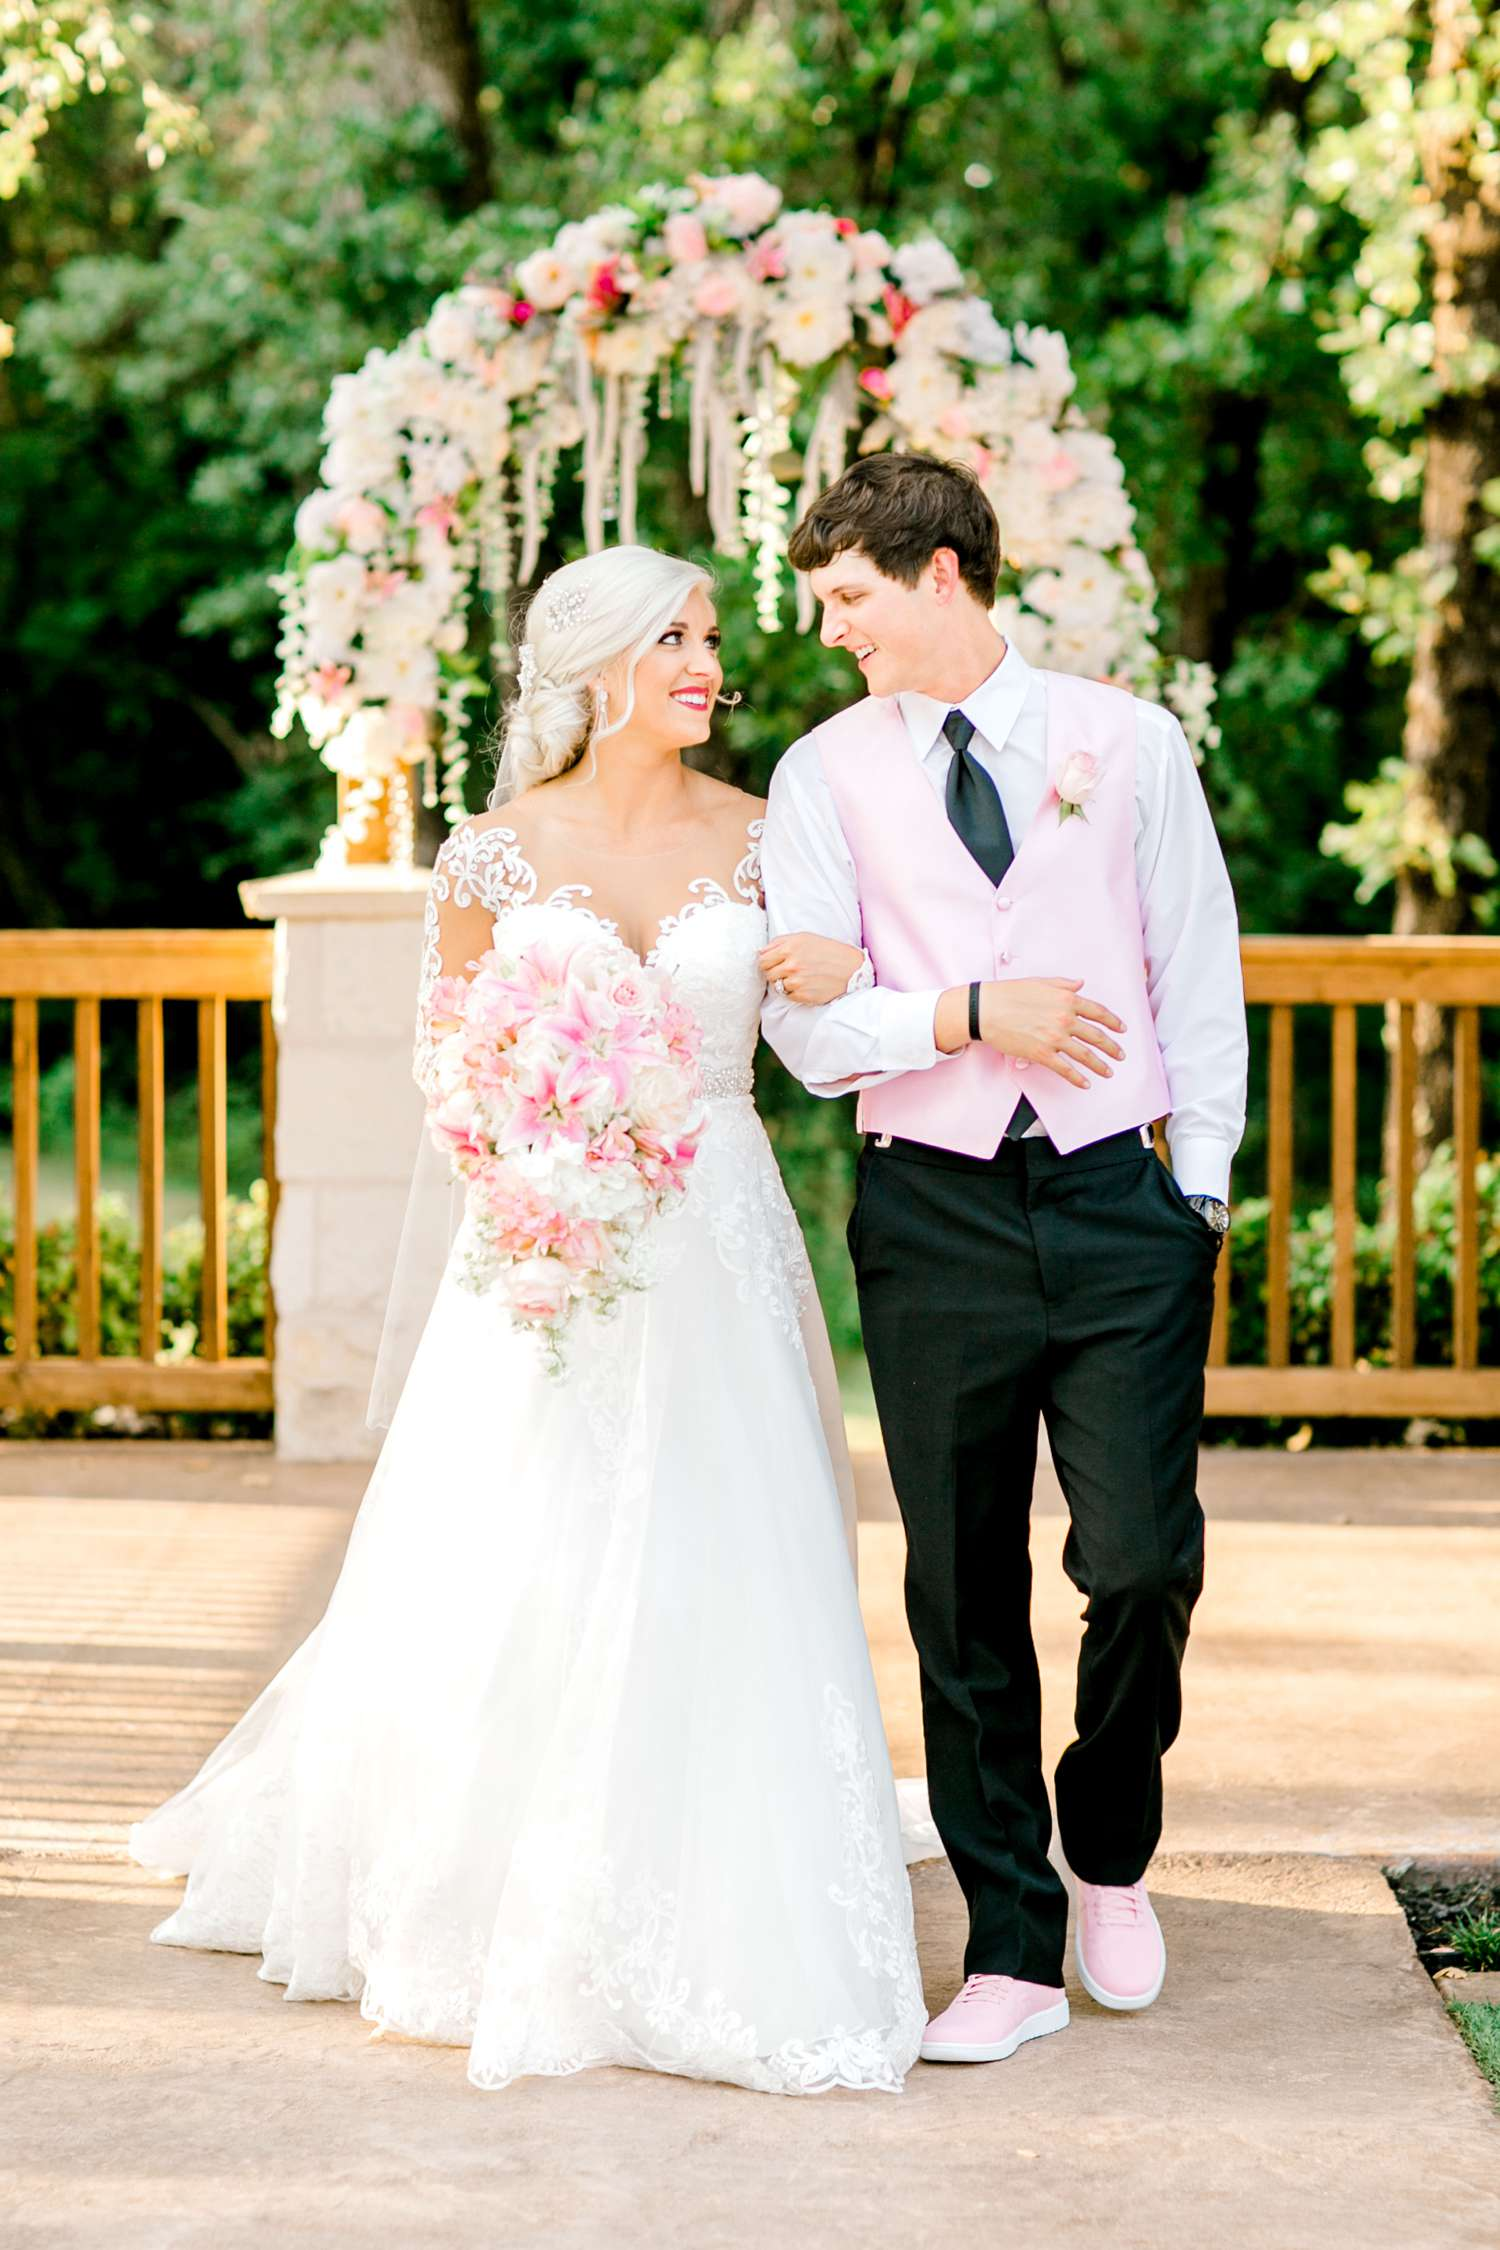 JESSICA+LYLE+NEEL+THE_SPRINGS_EVENTS_WEDDING_OKLAHOMA_ALLEEJ_PHOTOGRAPHER_0080.jpg